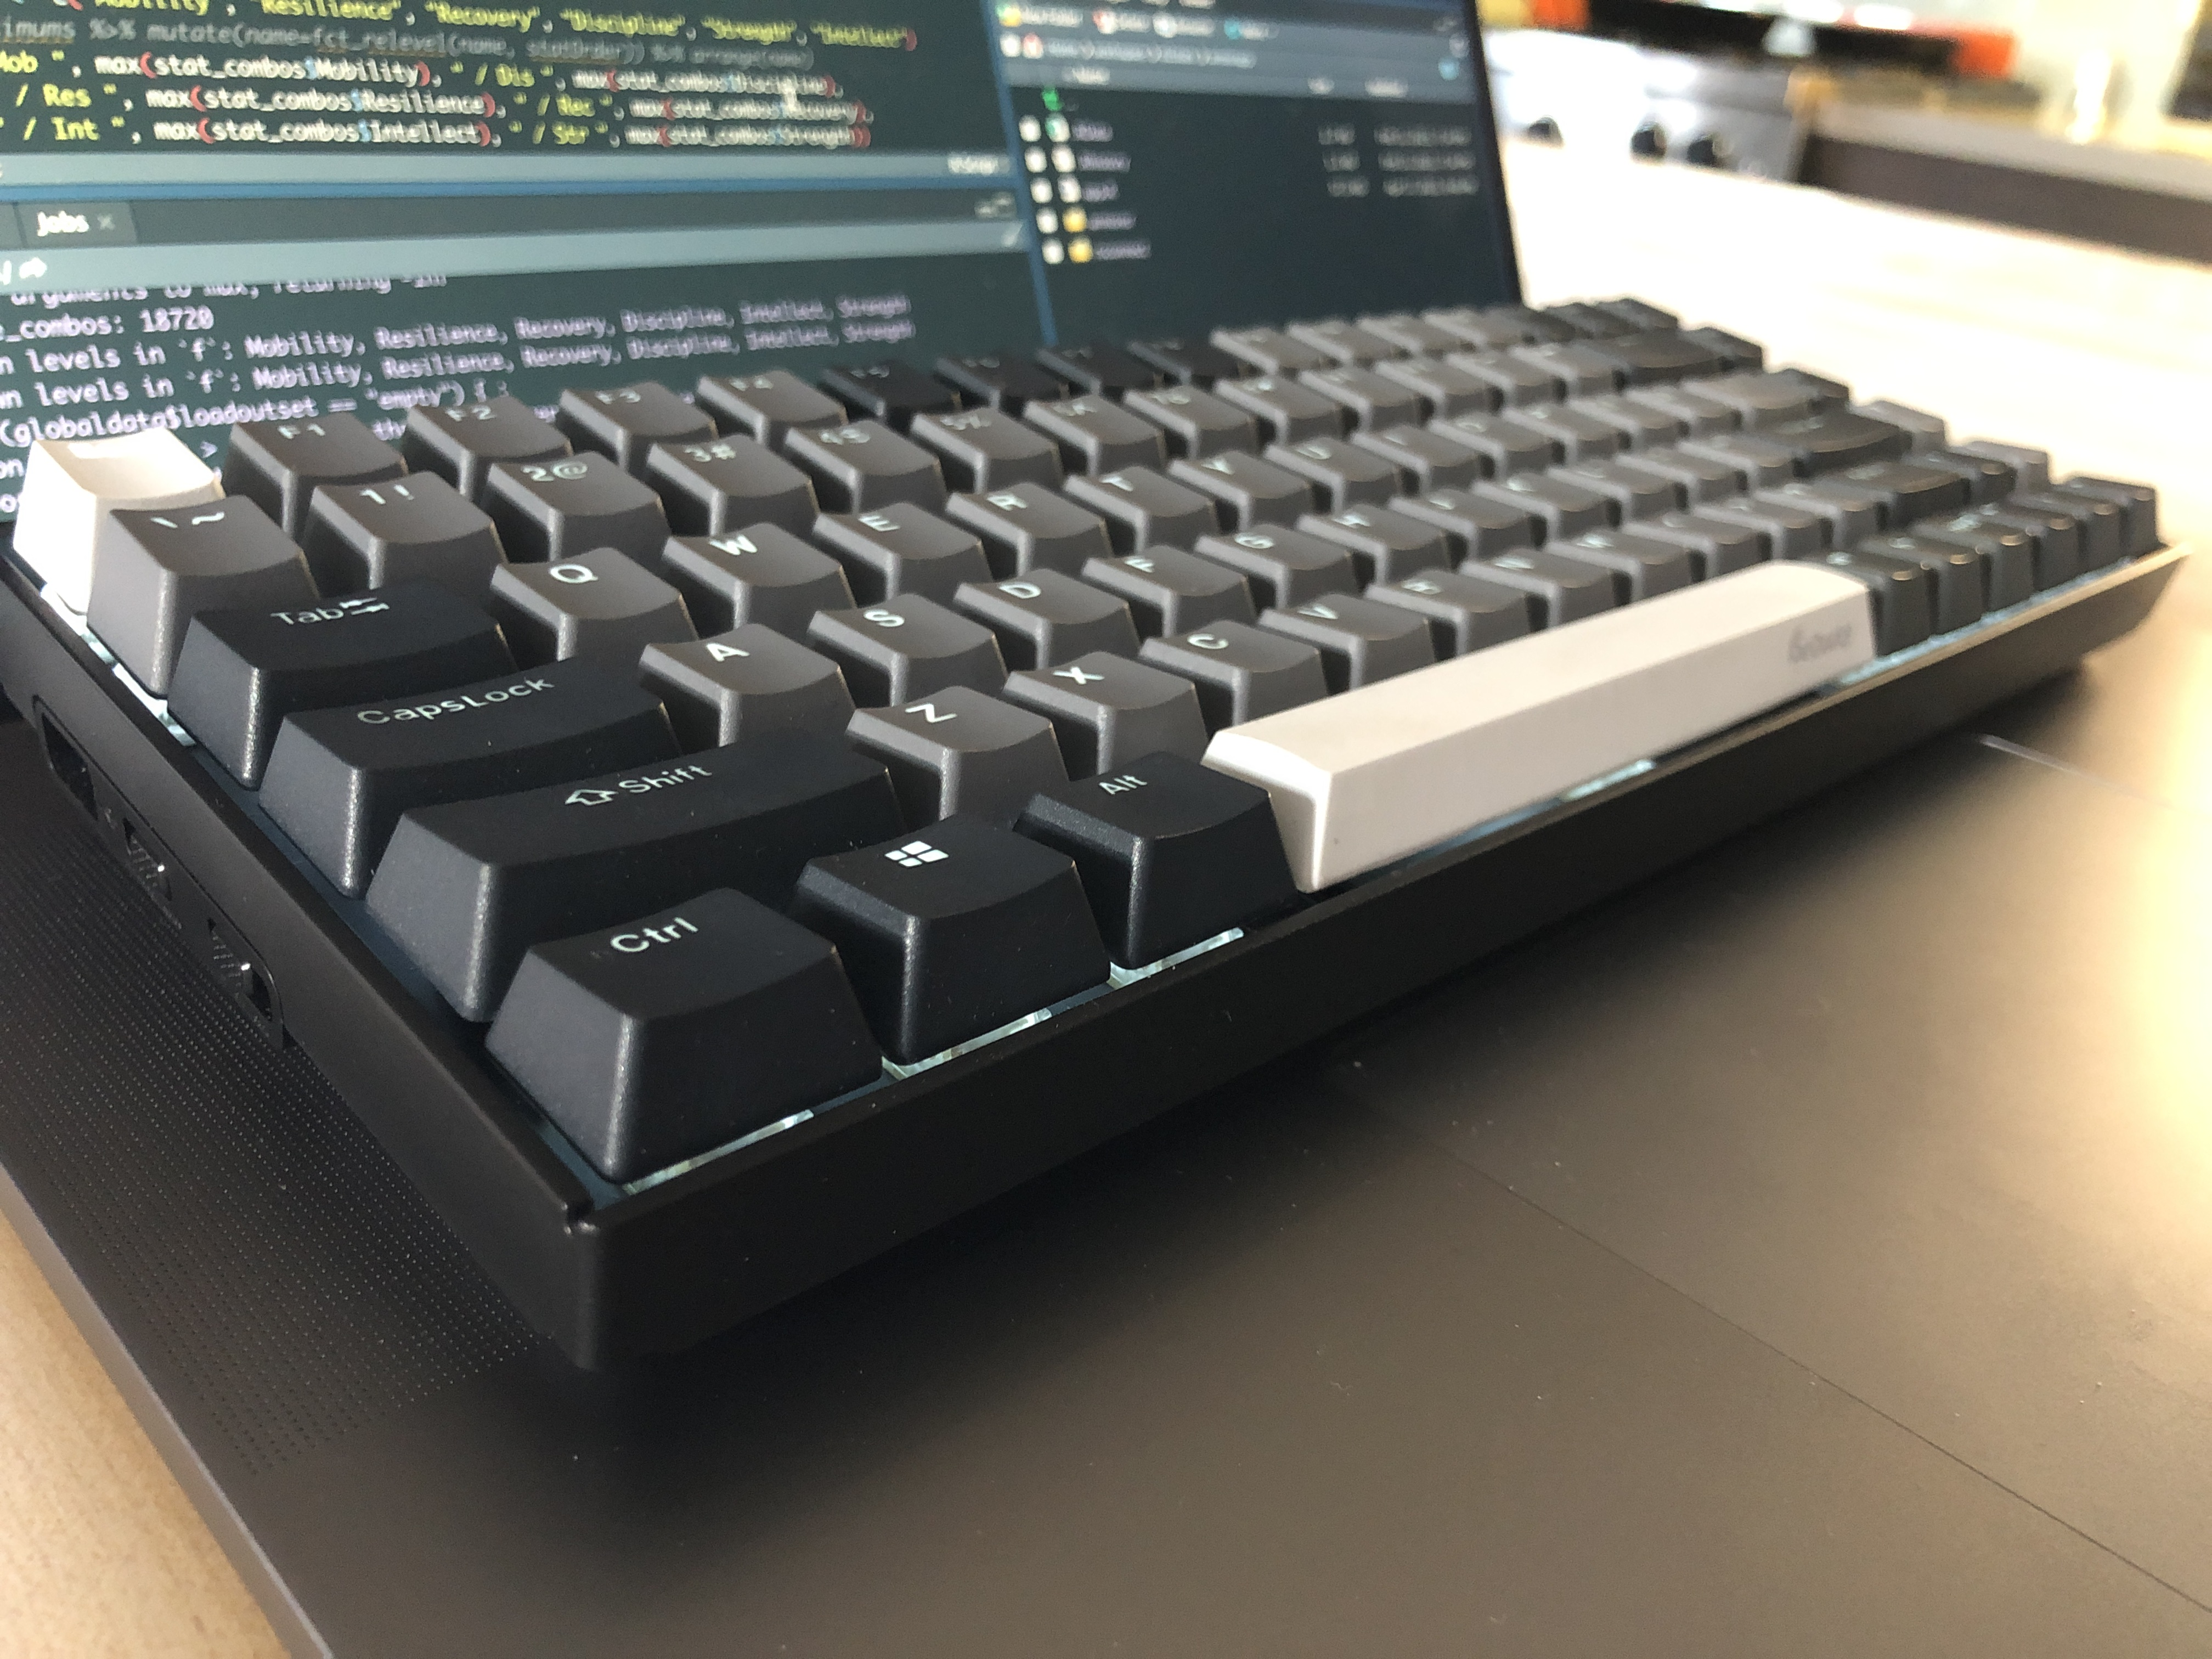 a mechanical keyboard with grey and white keys resting on top of a MacBook, viewed from an angle